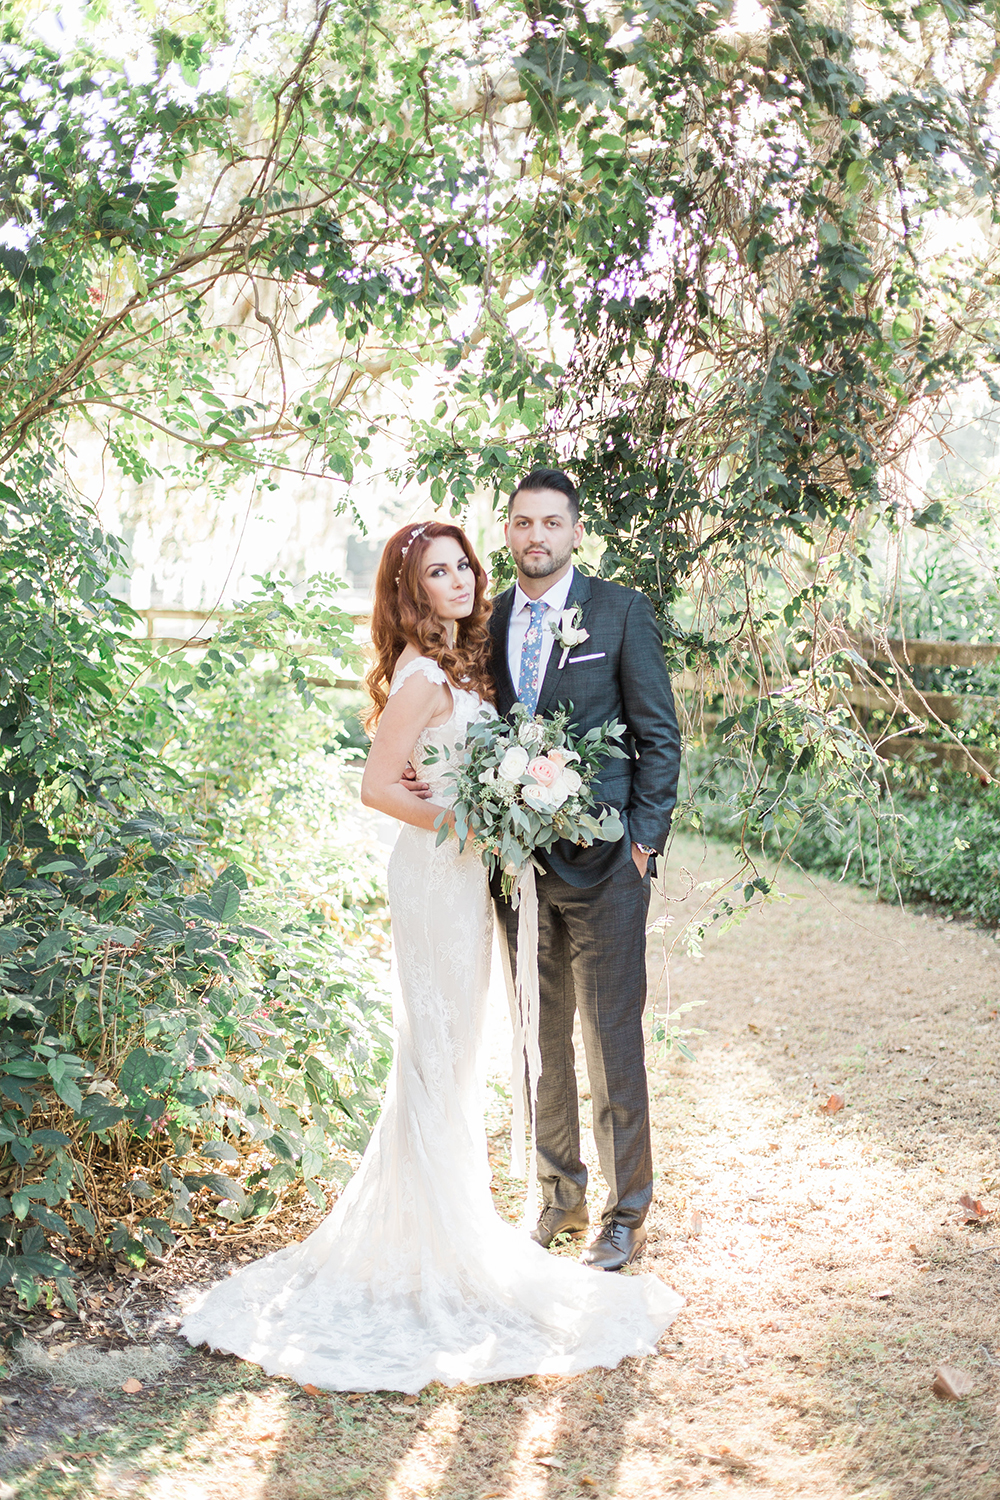 Southern Garden Chic Wedding Inspiration - photo by Landon Hendrick Photography http://ruffledblog.com/southern-garden-chic-wedding-inspiration